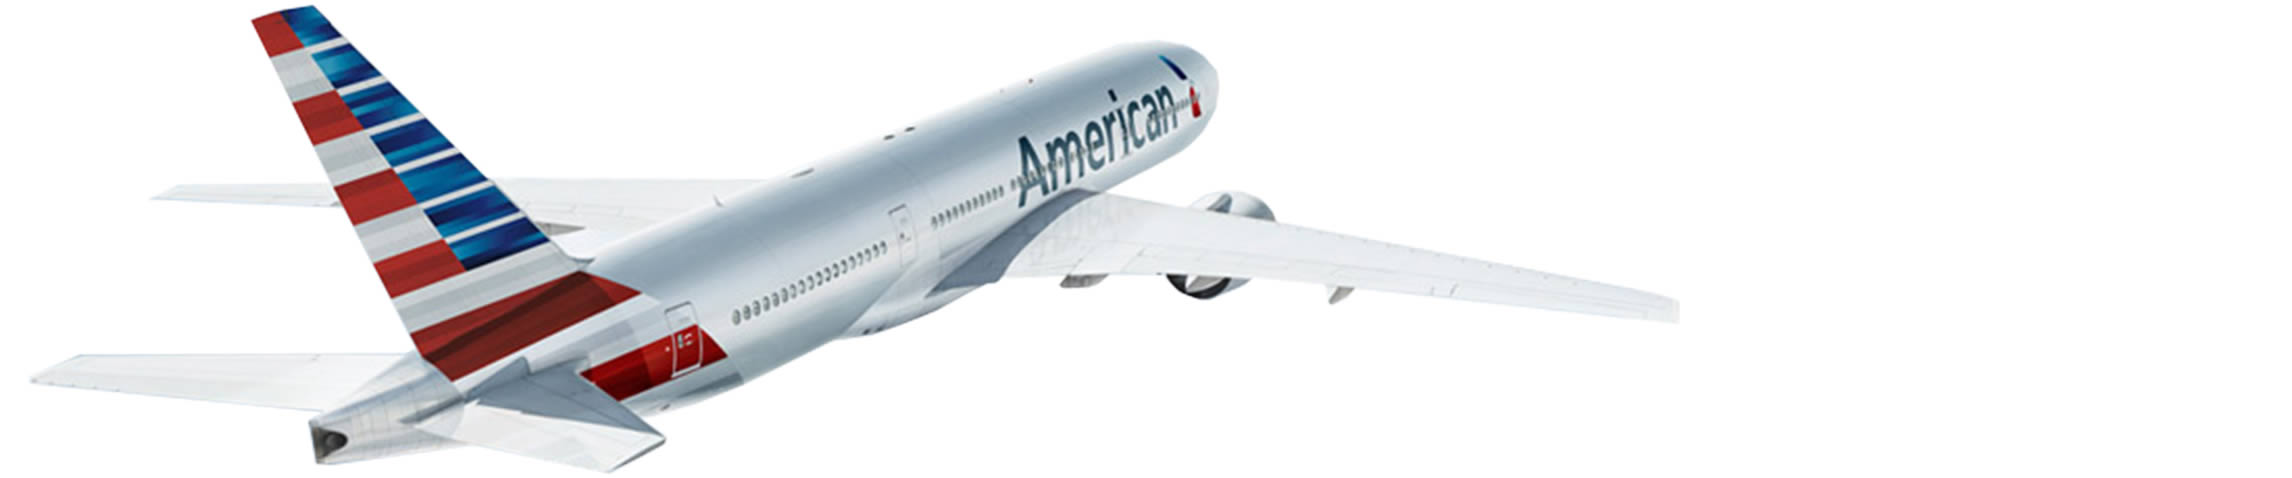 A plane with the new American livery